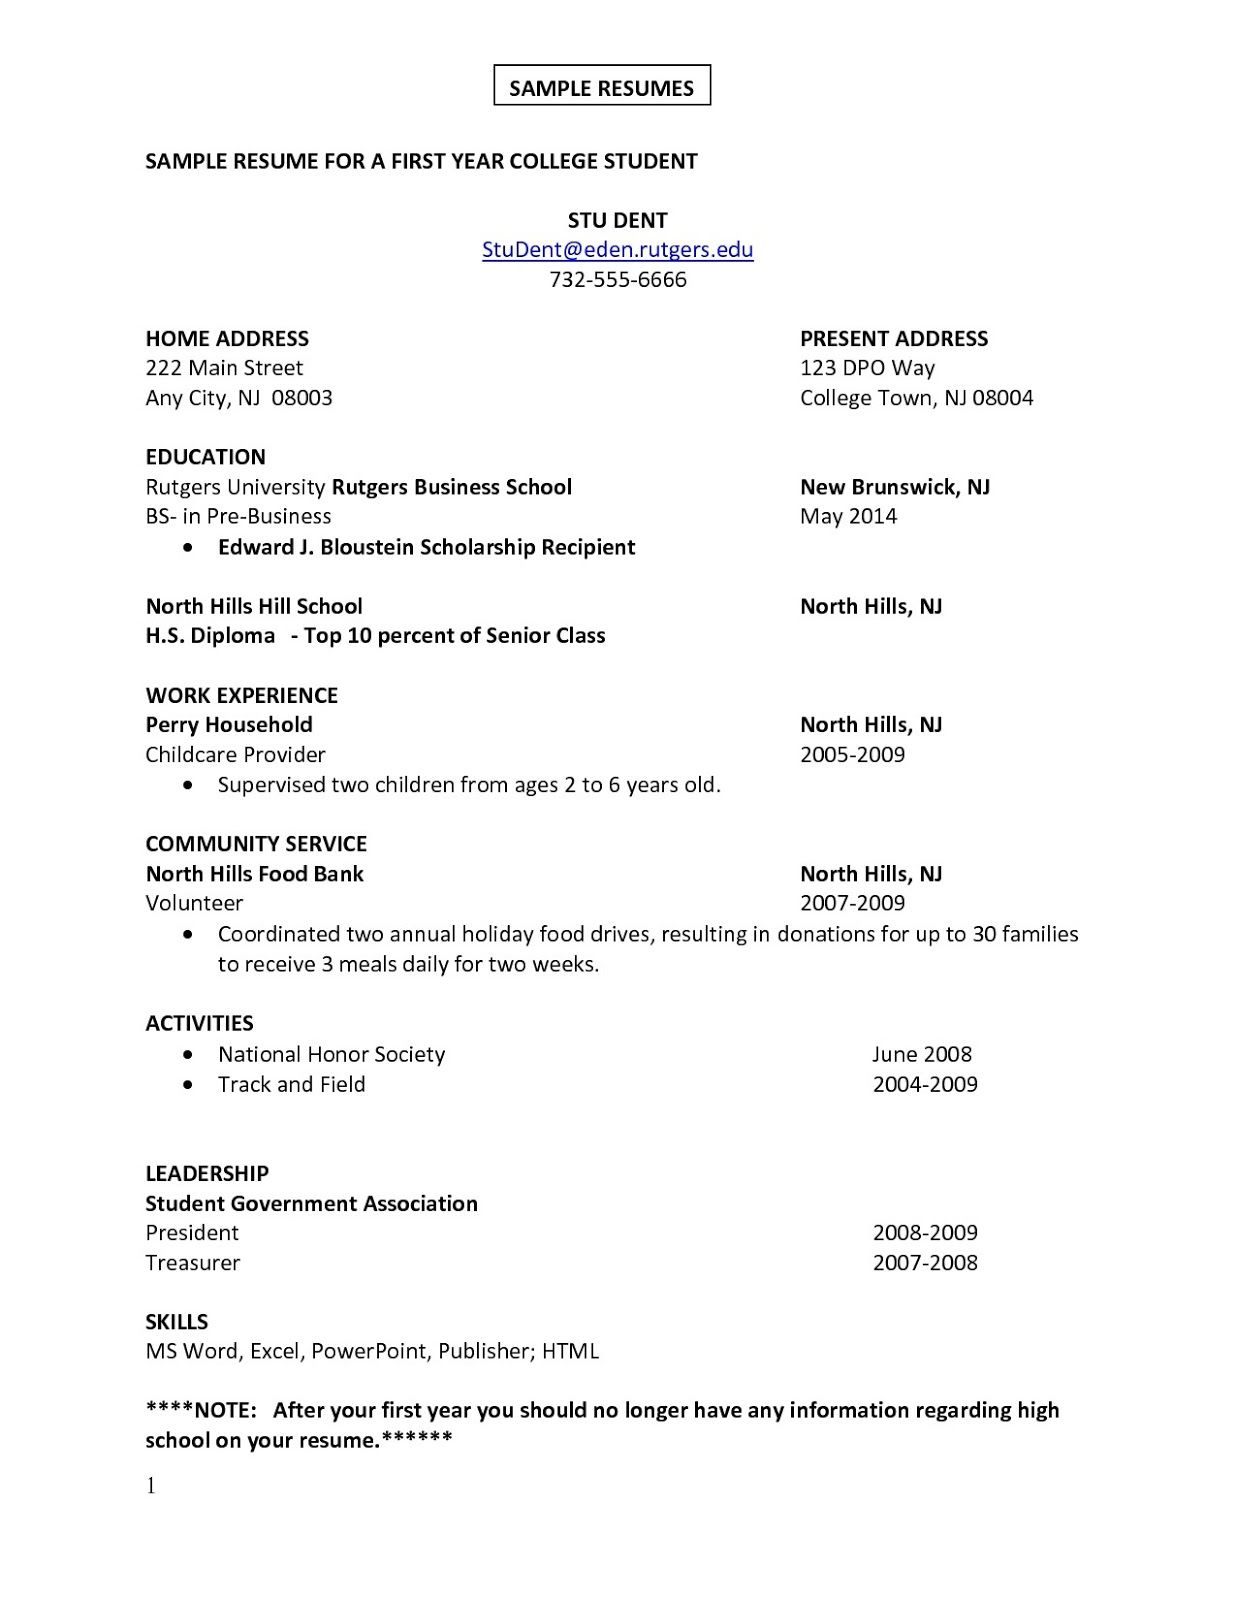 First Job Sample Resume | Sample Resumes | Sample Resumes .